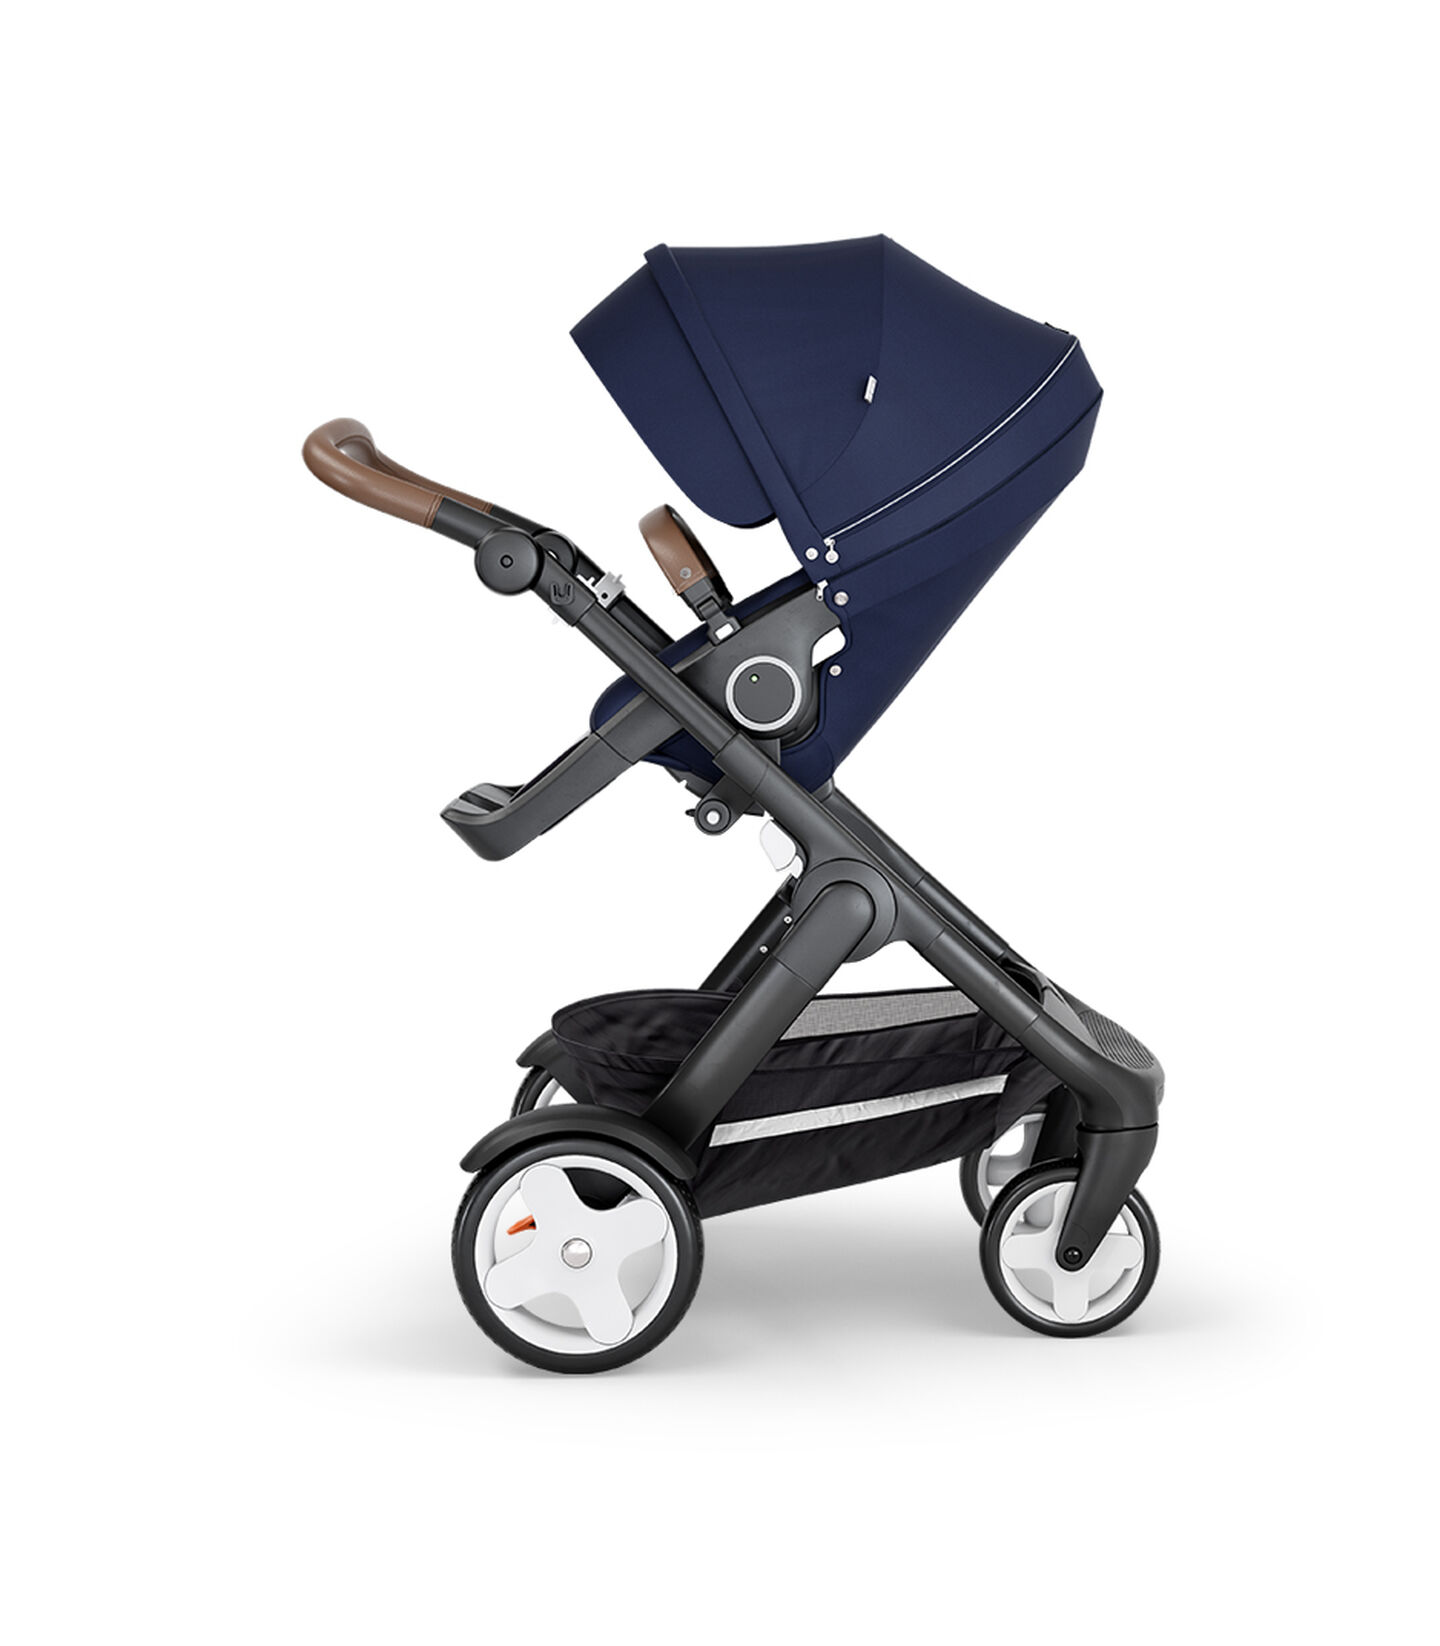 Stokke® Trailz™ with Black Chassis, Brown Leatherette and Classic Wheels. Stokke® Stroller Seat, Deep Blue. view 2